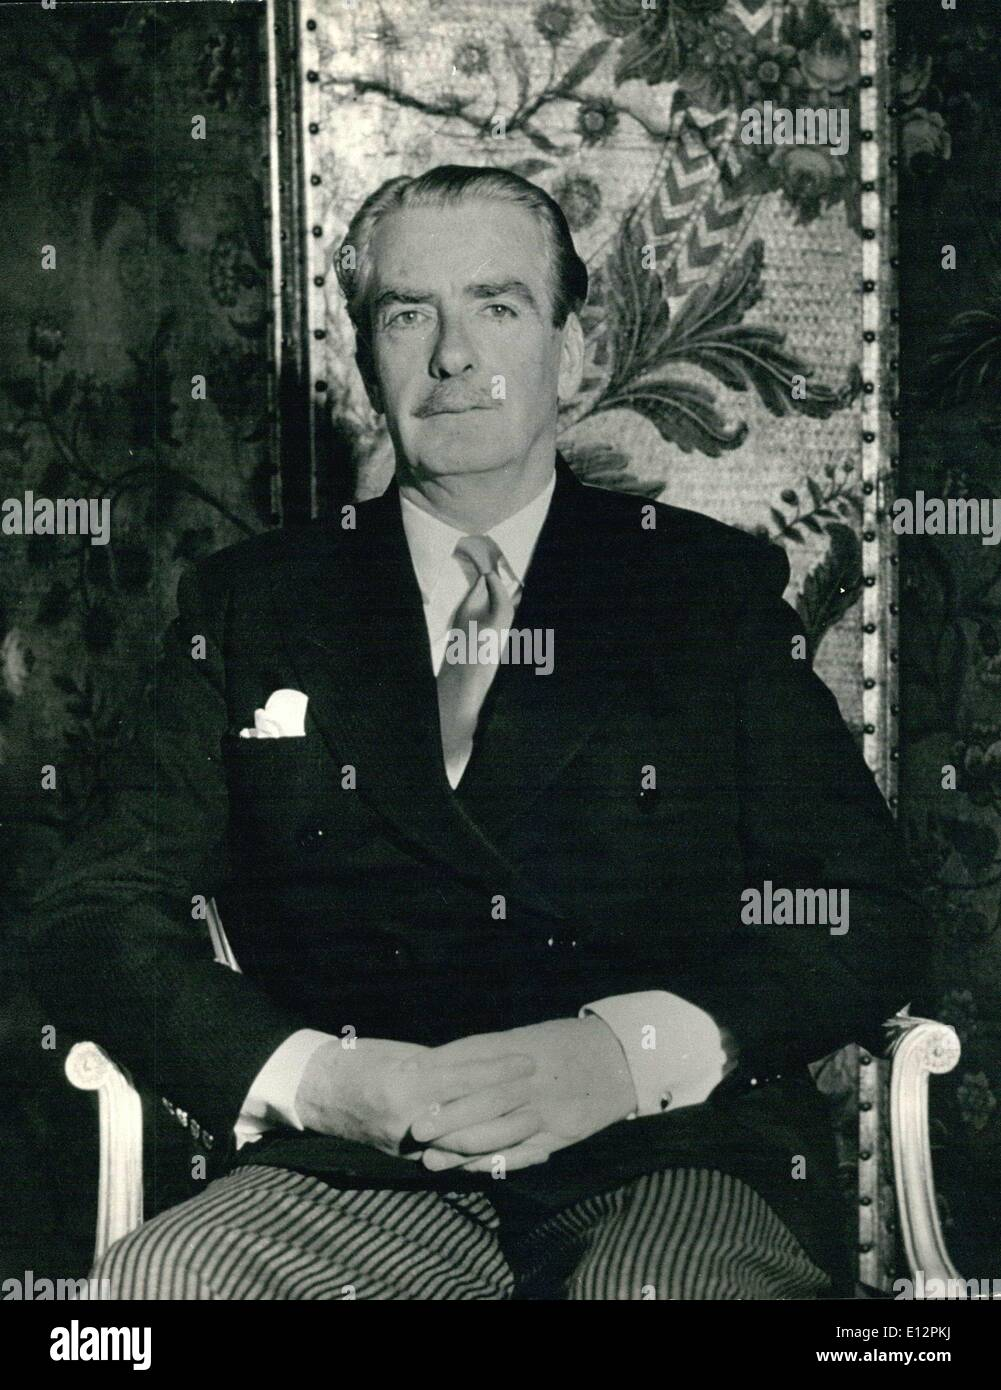 Feb. 24, 2012 - The Rt. Hon Sir Anthony Eden KG. MC. MP The Foreign Secretary and probable successor to Sir Winston Churchill, photographed at his official residence in Carlton House Terrace. - Stock Image